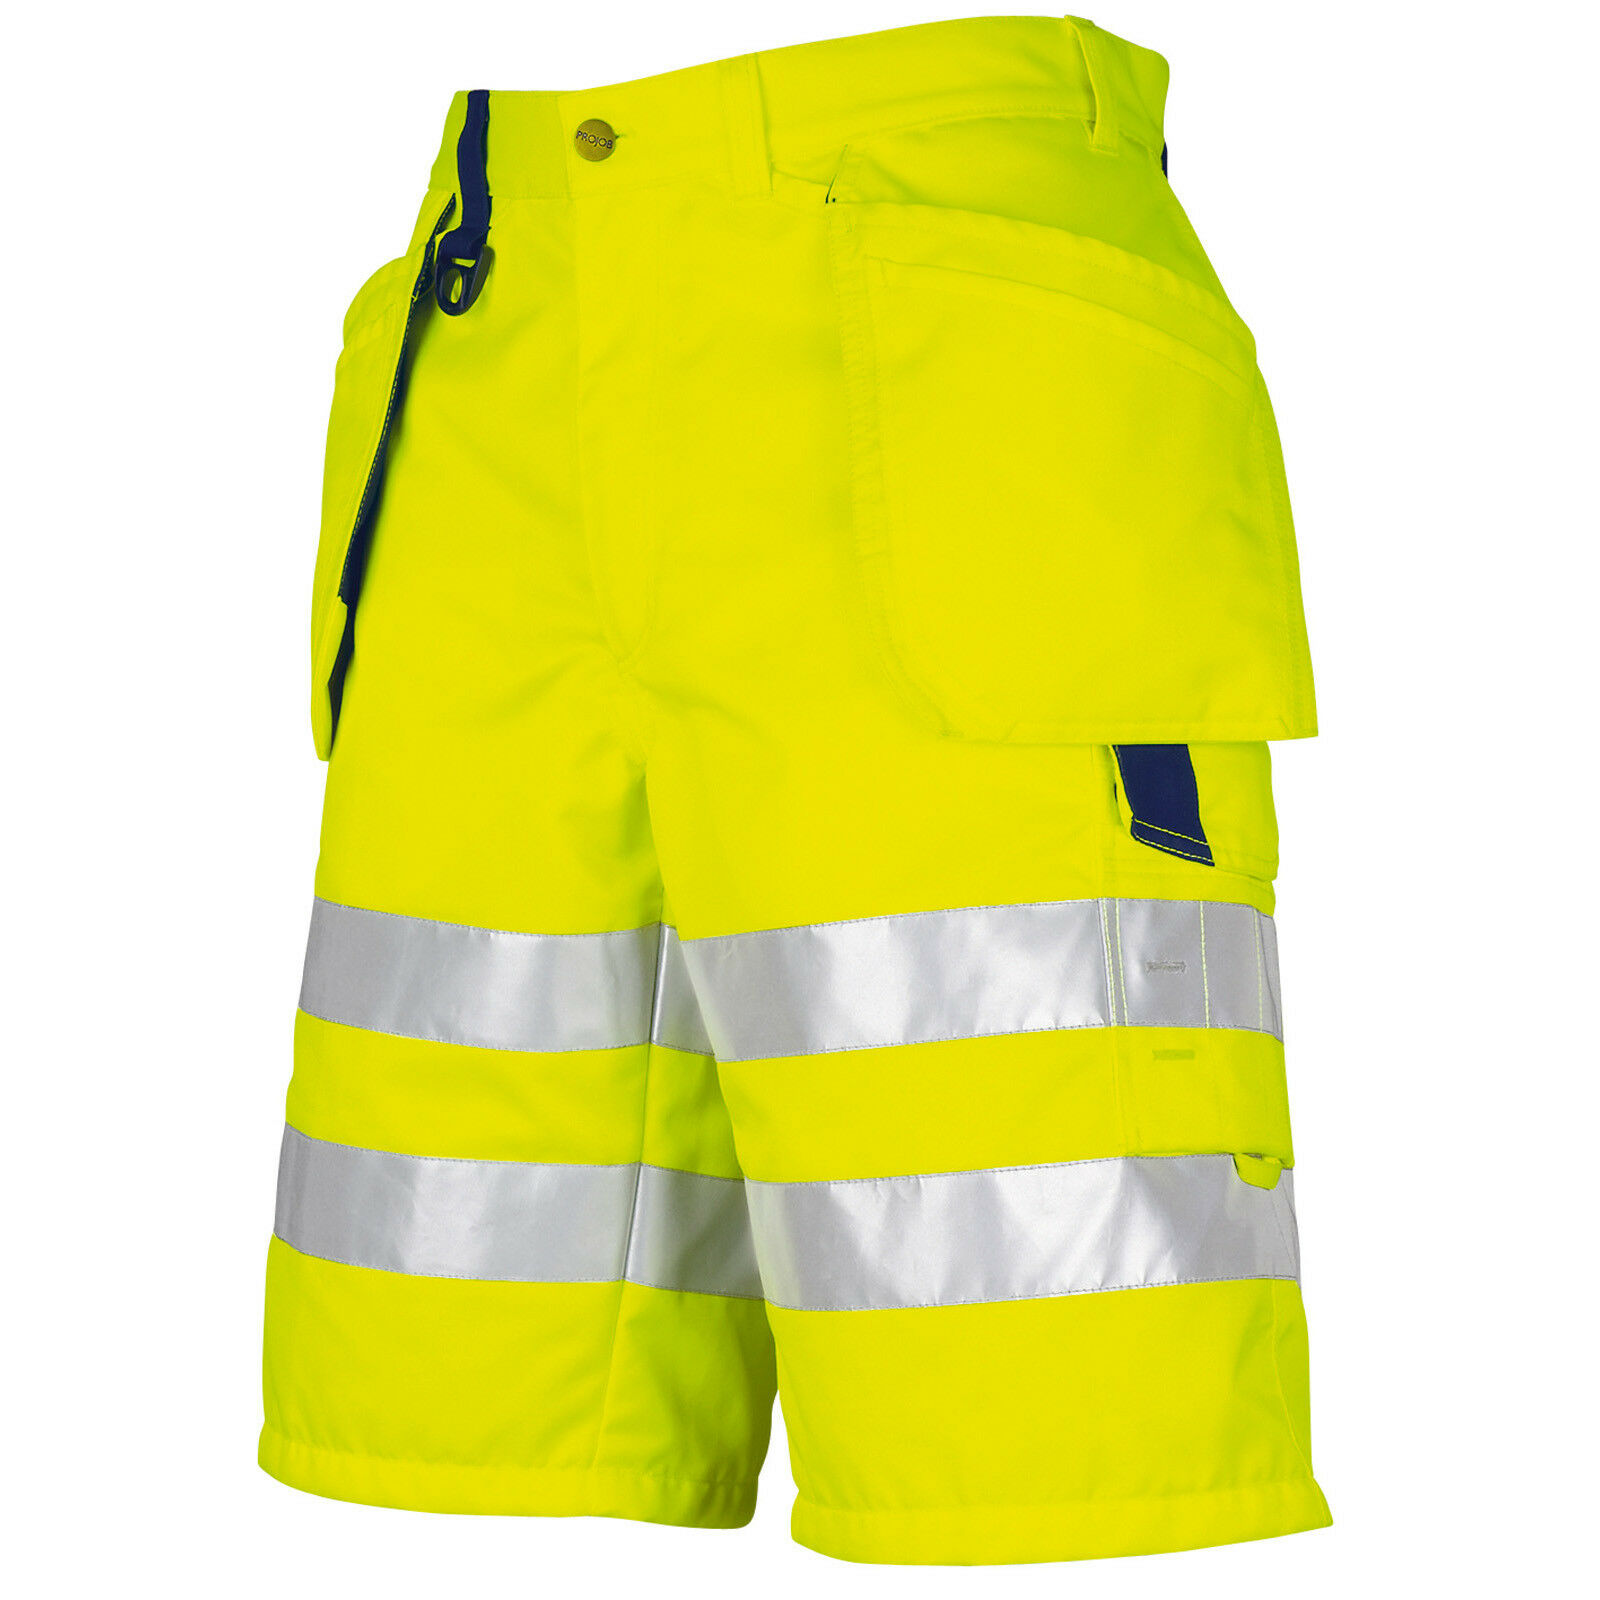 Prossob Prossob Prossob Hi Vis Work Shorts with Holster Pockets. Class 2 - 646503 74e20a